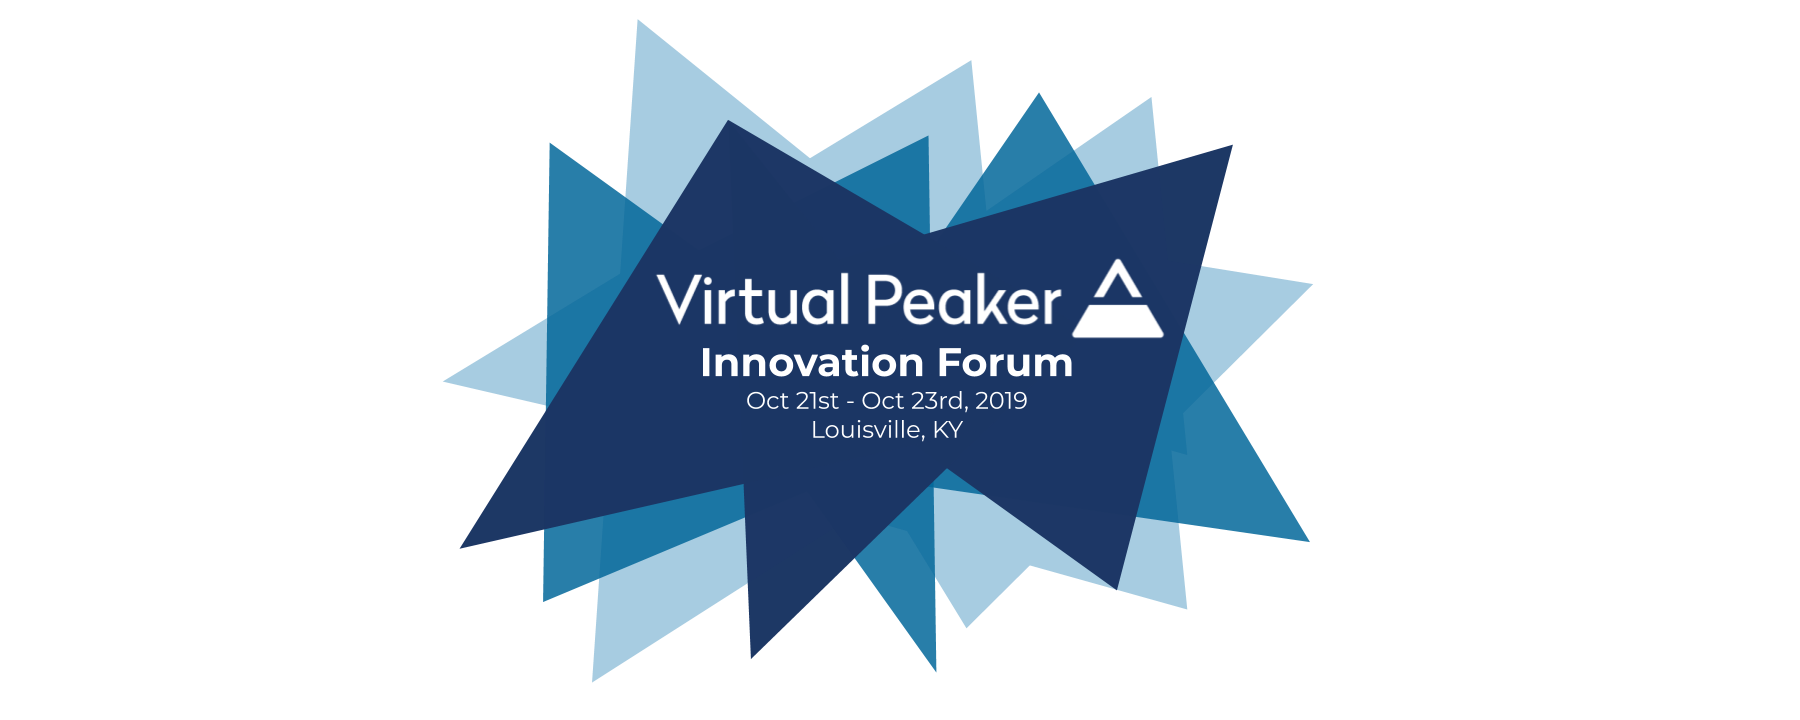 FINAL Virtual Peaker 2nd Innovation Forum Graphic.png